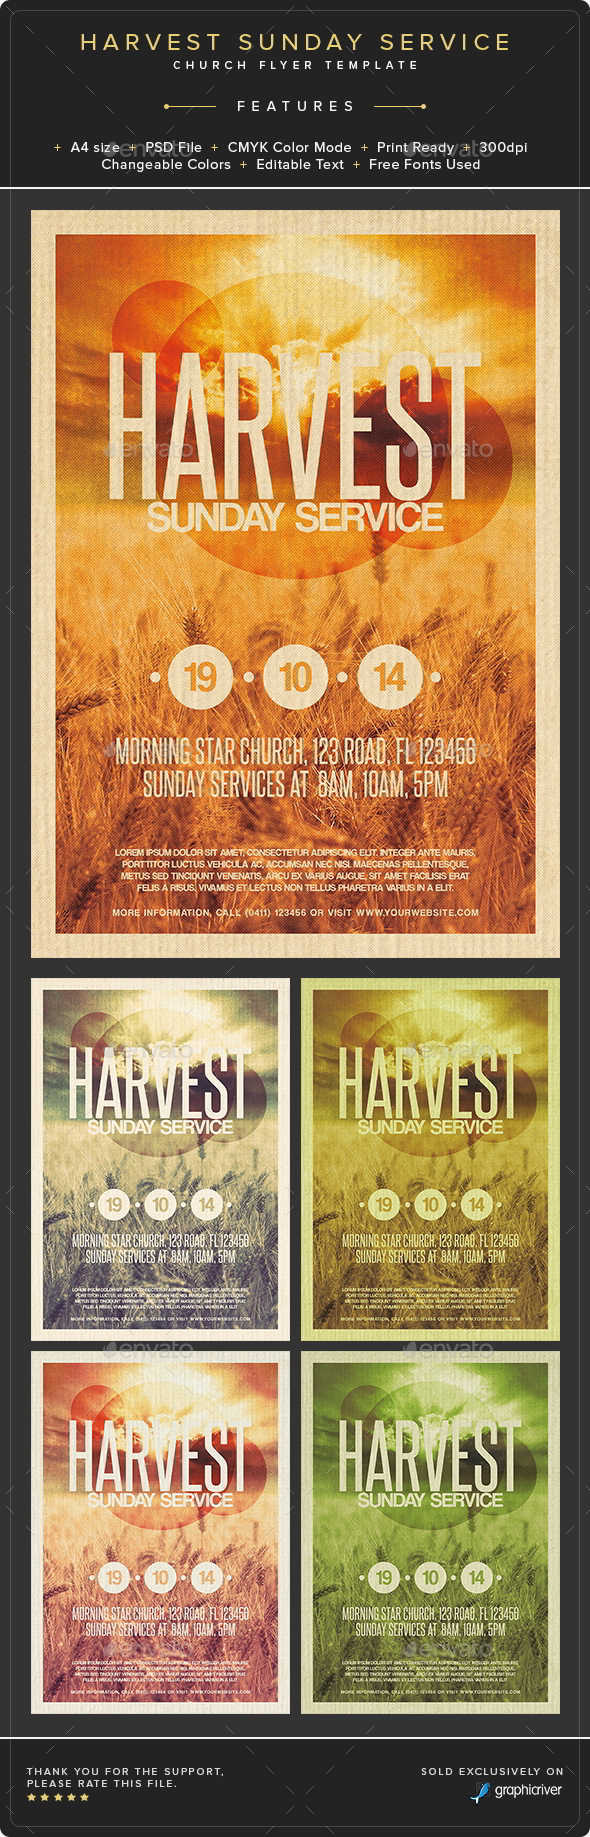 GraphicRiver Harvest Sunday Service Flyer Template 8889647